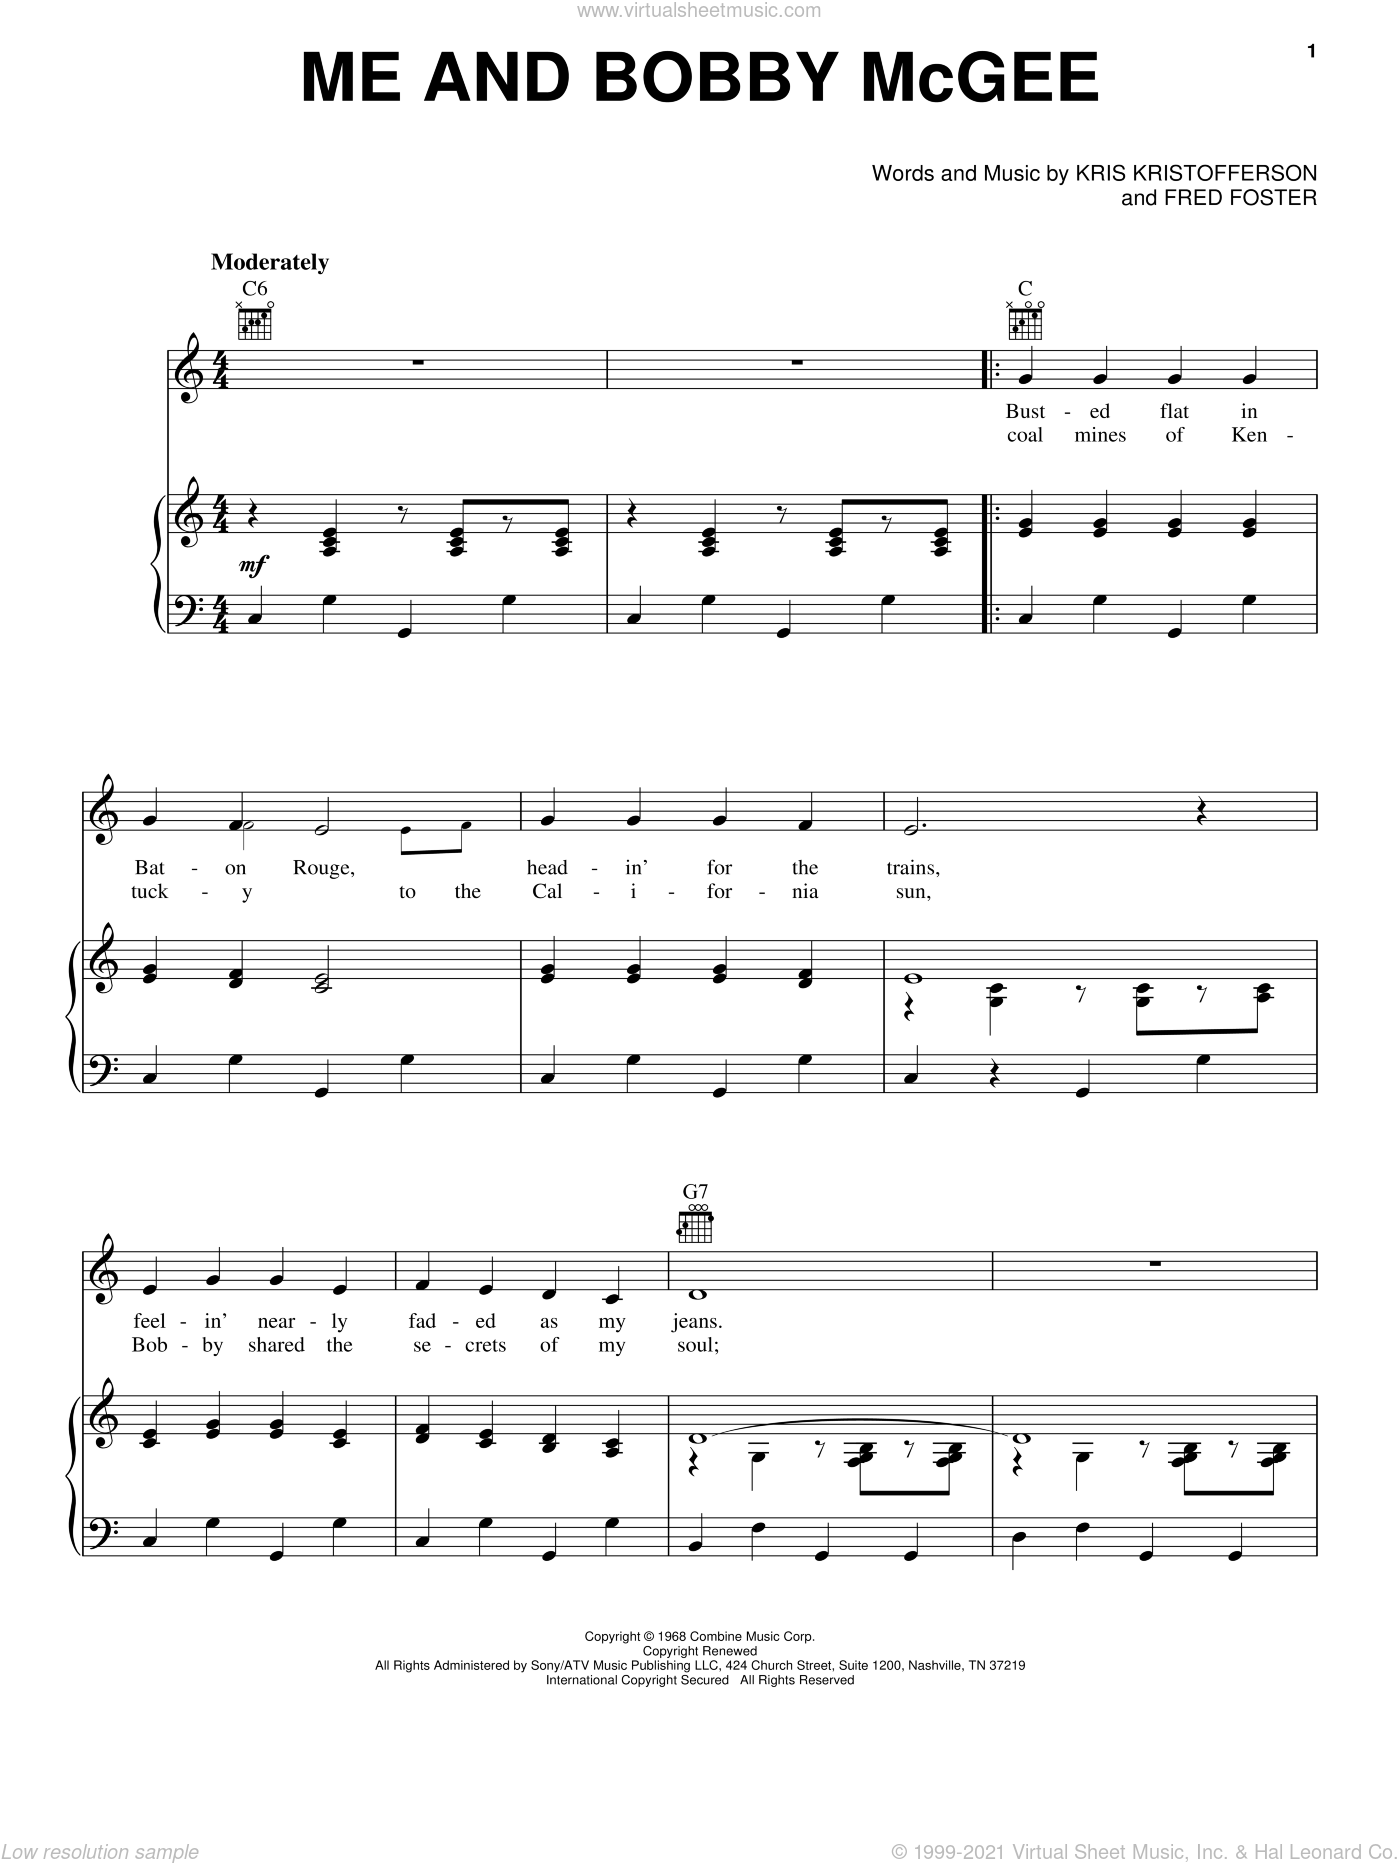 Me And Bobby McGee sheet music for voice, piano or guitar by Janis Joplin, Roger Miller, Fred Foster and Kris Kristofferson, intermediate skill level